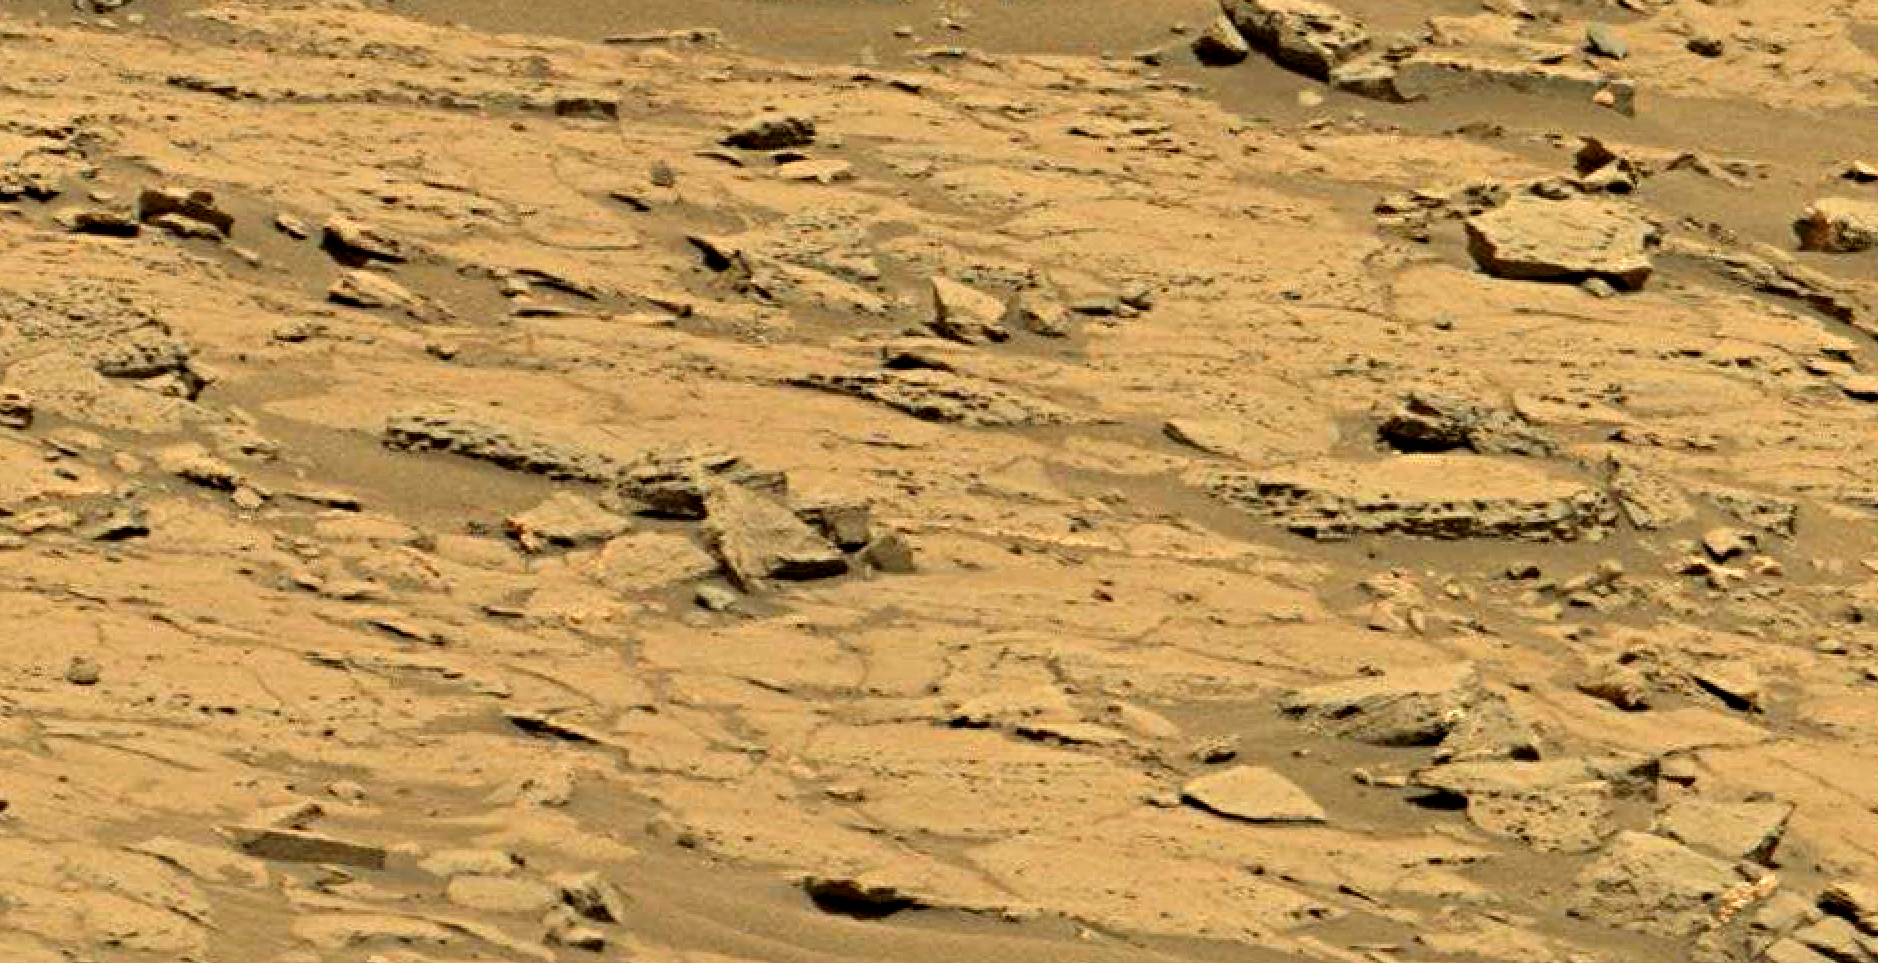 mars sol 1353 anomaly-artifacts 58 was life on mars